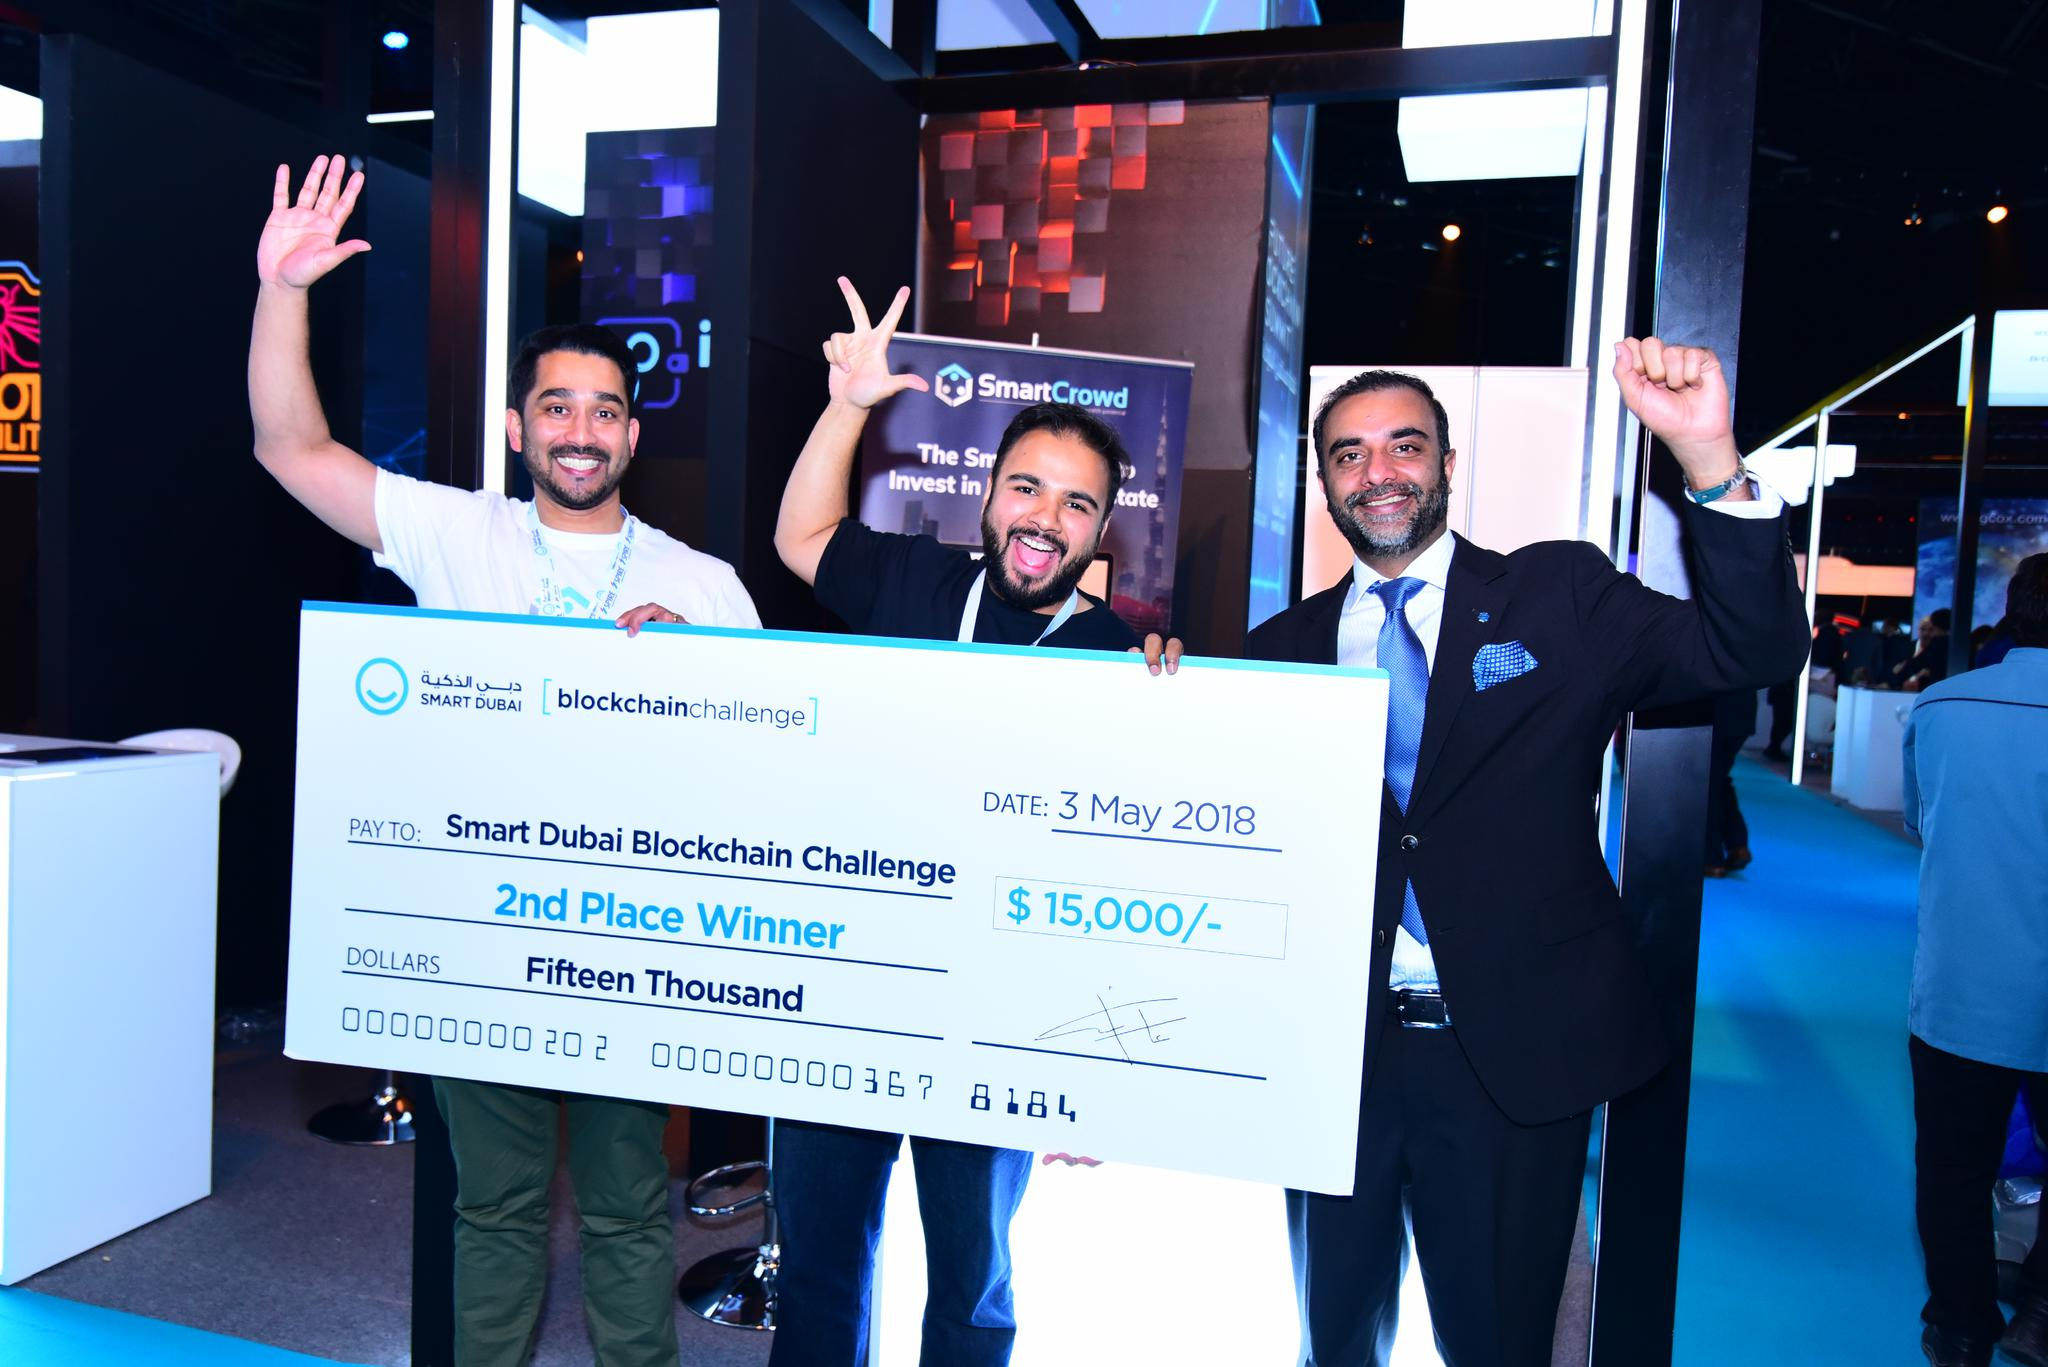 Smart crowd completes first regulated crowdfunded real estate transaction in MENA